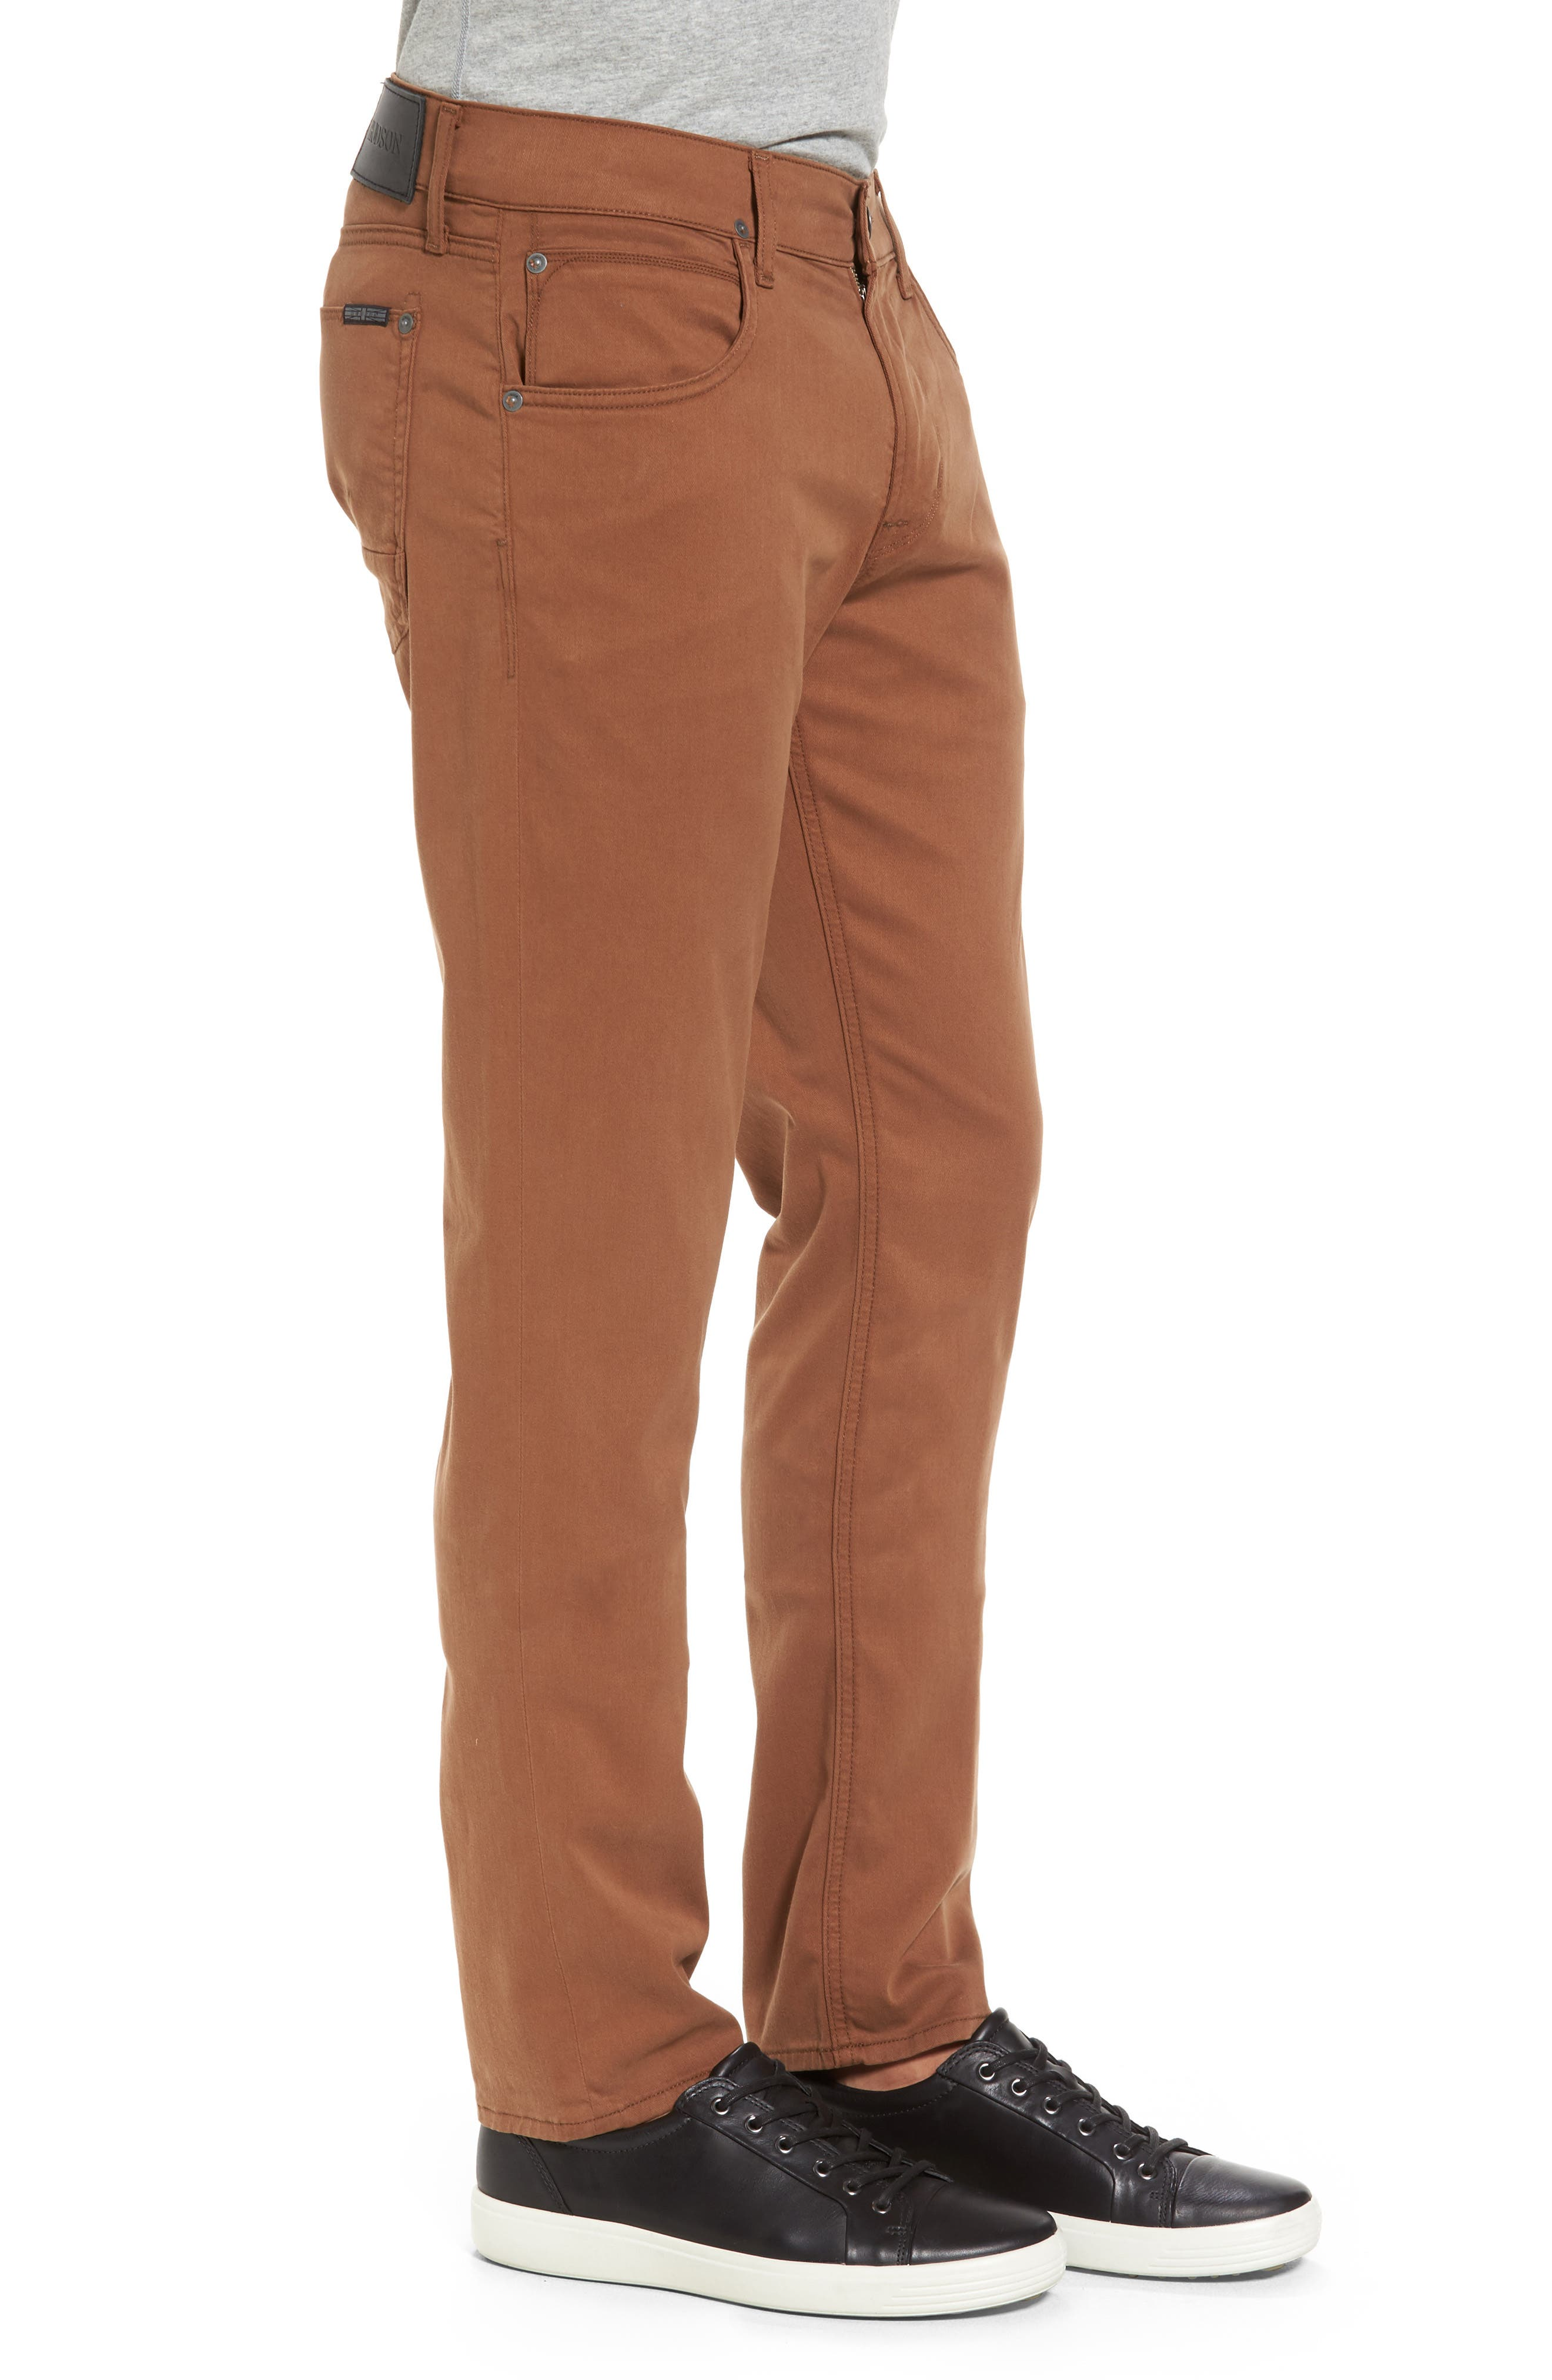 Blake Slim Fit Jeans,                             Alternate thumbnail 3, color,                             200